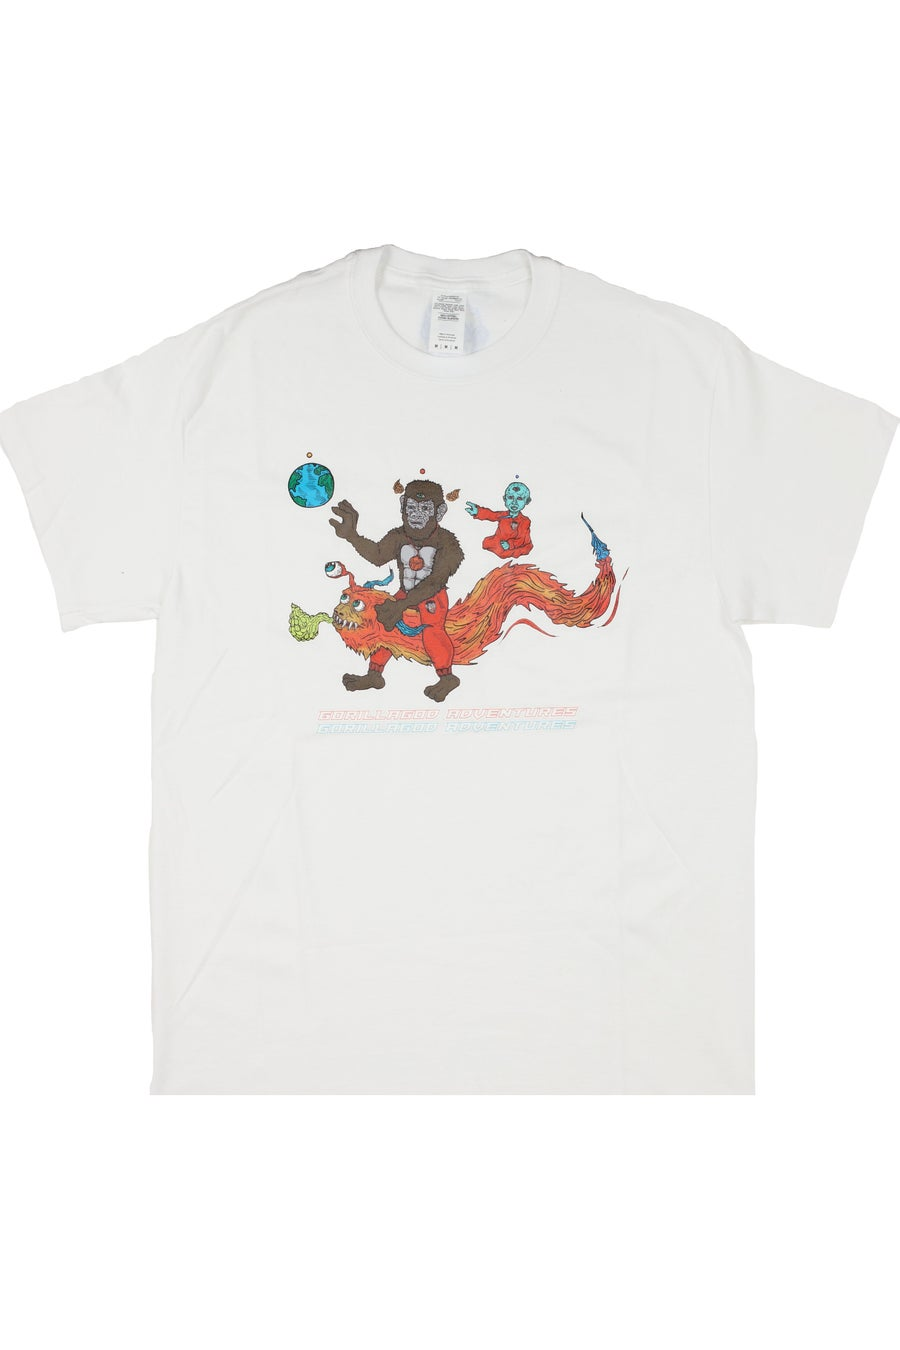 Image of White 'Gorilla God Adventures' T-Shirt